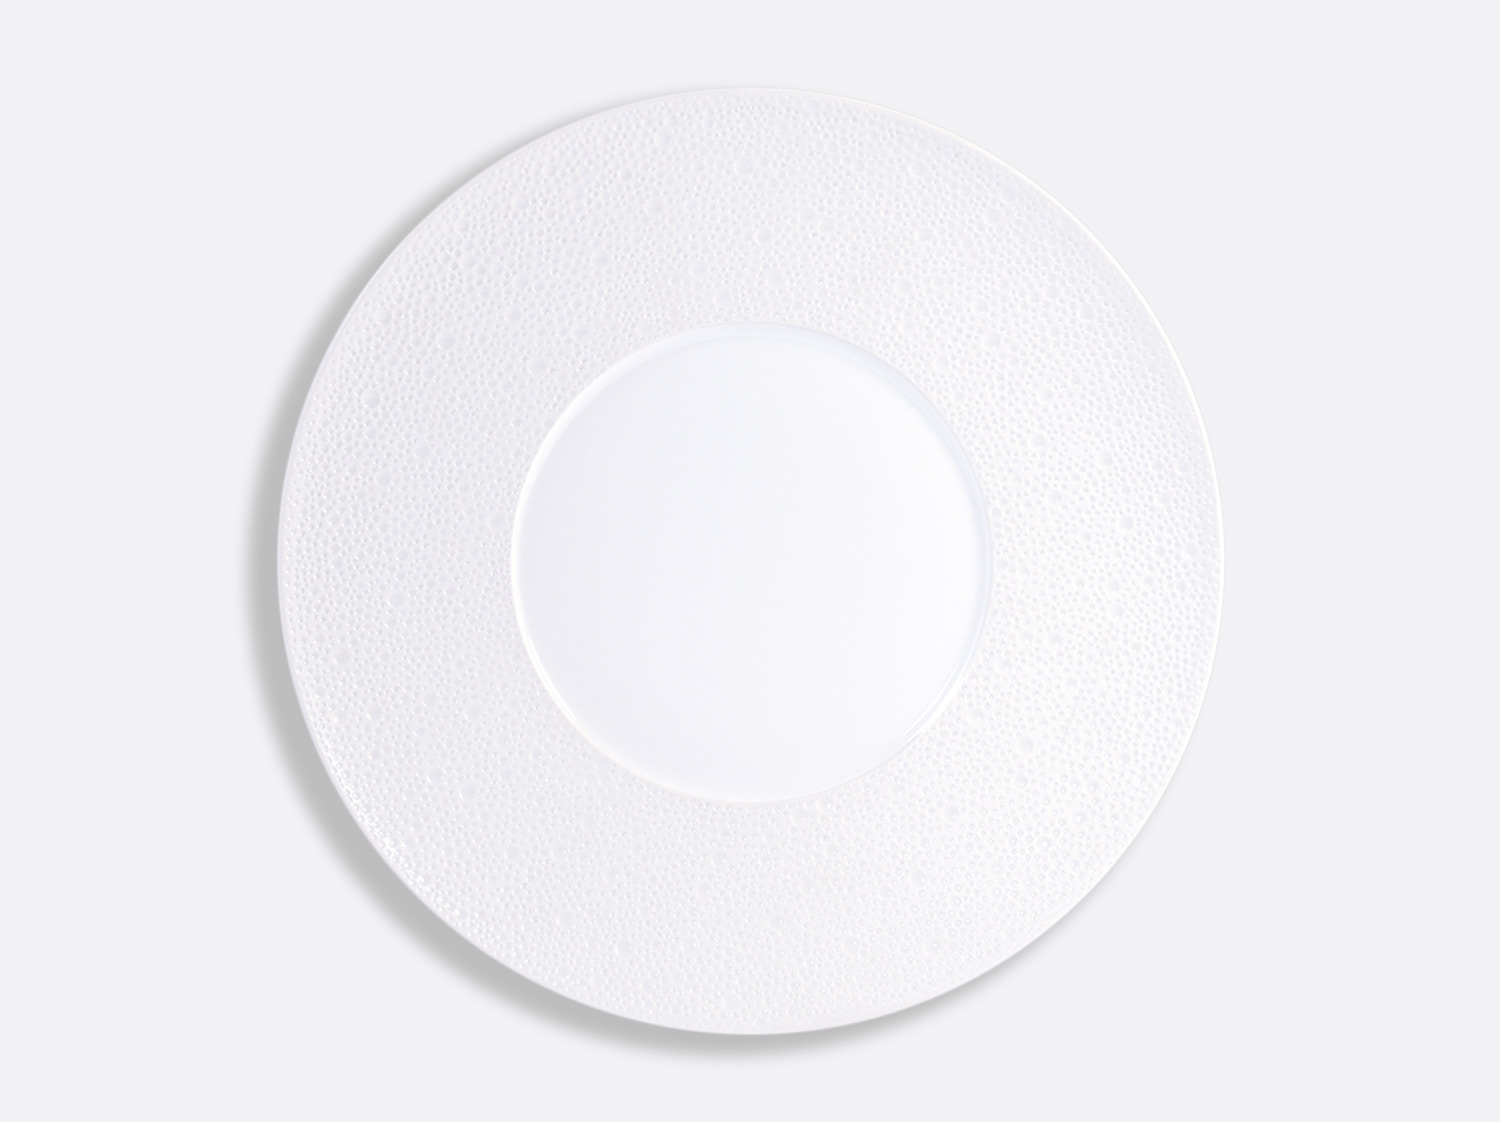 Assiette Shogun 31,5 cm en porcelaine de la collection ECUME BLANC Bernardaud